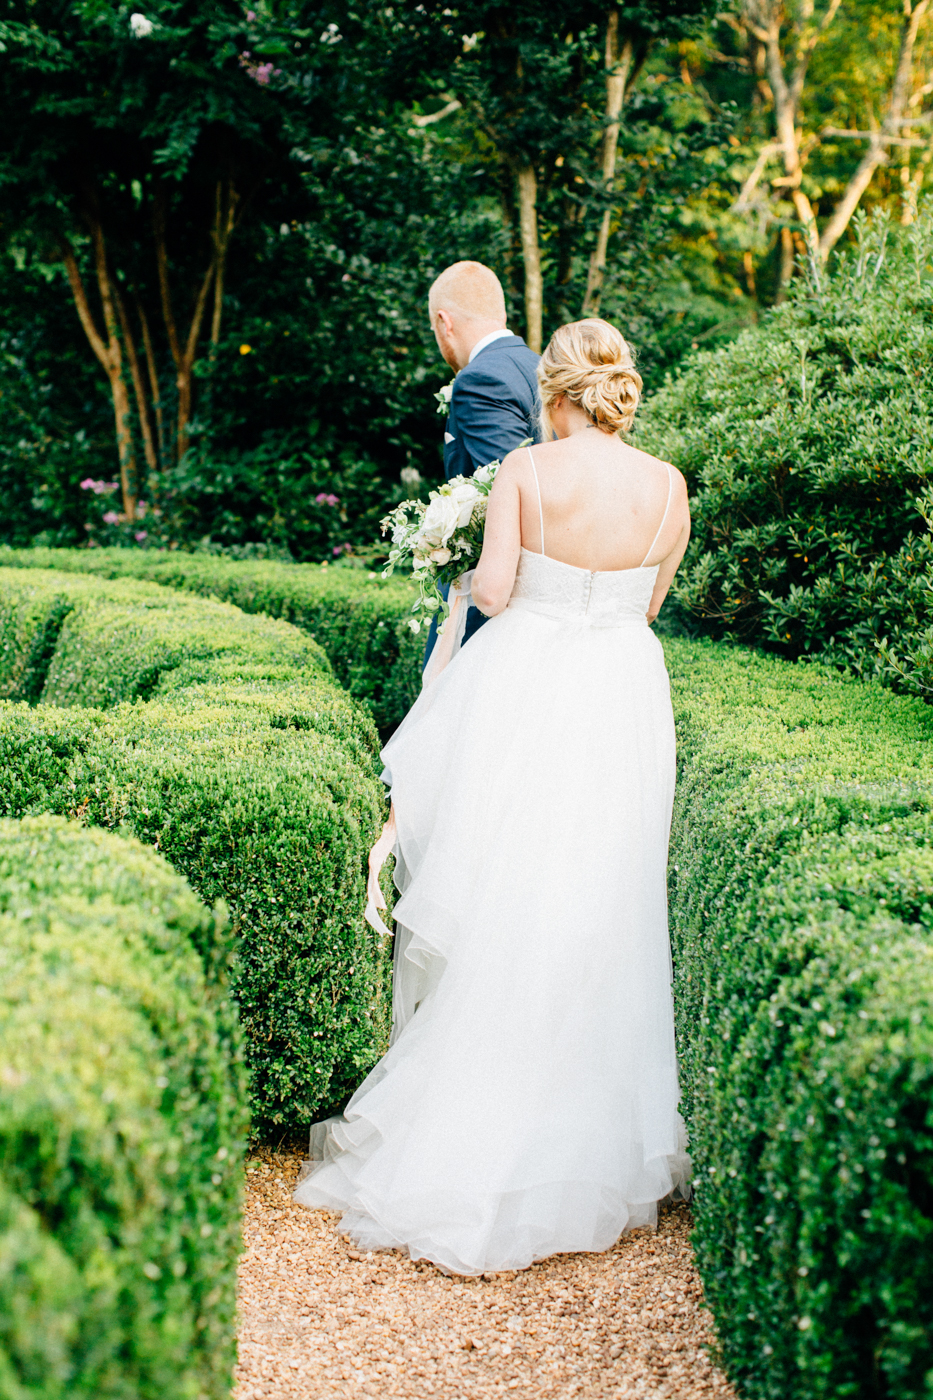 Four corners photography barnsley gardens wedding souther weddings madison and matthew wedding-47.jpg